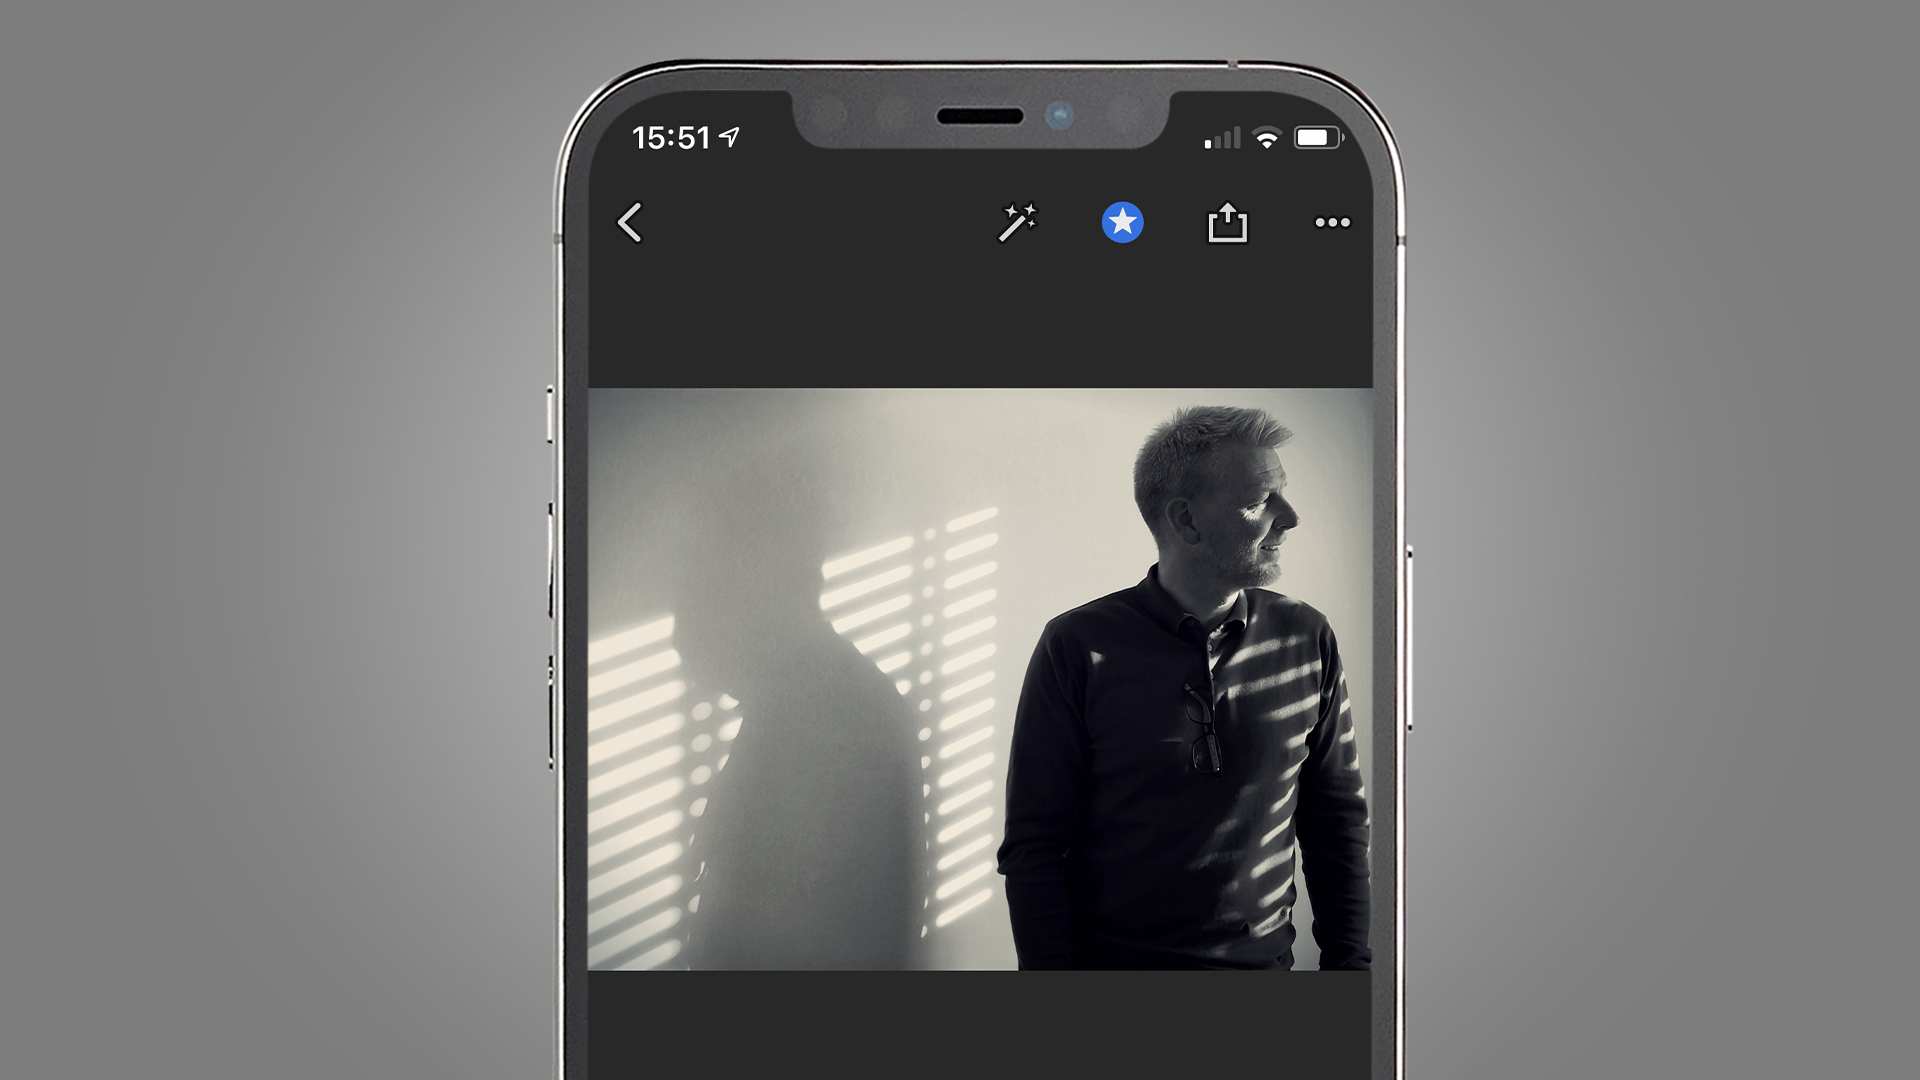 A phone screen showing a portrait of a man looking through a window